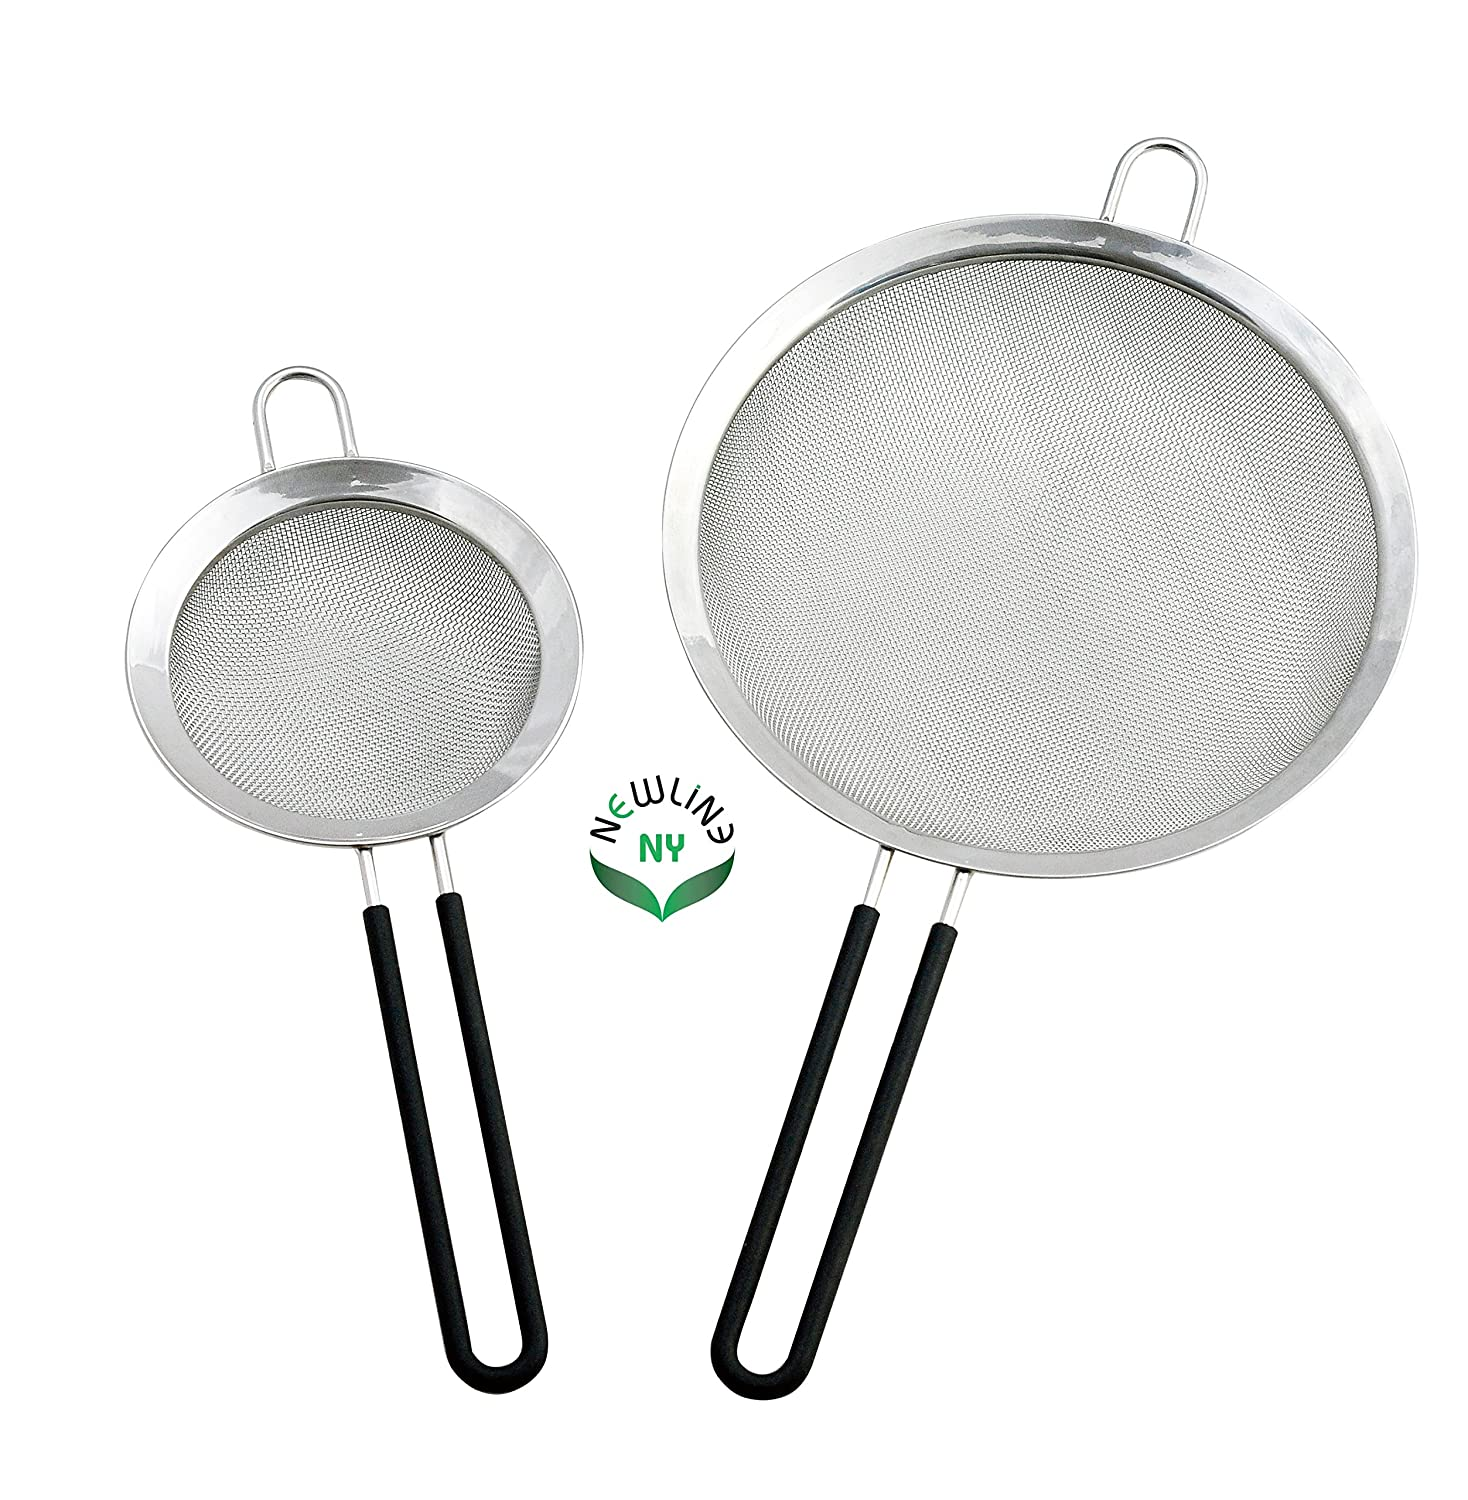 NewlineNY Stainless Steel Premium Mesh Strainers with Non-Slip Silicone Handles, Excellent for Straining Quinoa, Rice, Fruit, Vegetables, Pasta, Nut Milk and similar, 5 & 8 2 Sizes Set NY-MS2S-16B0901D